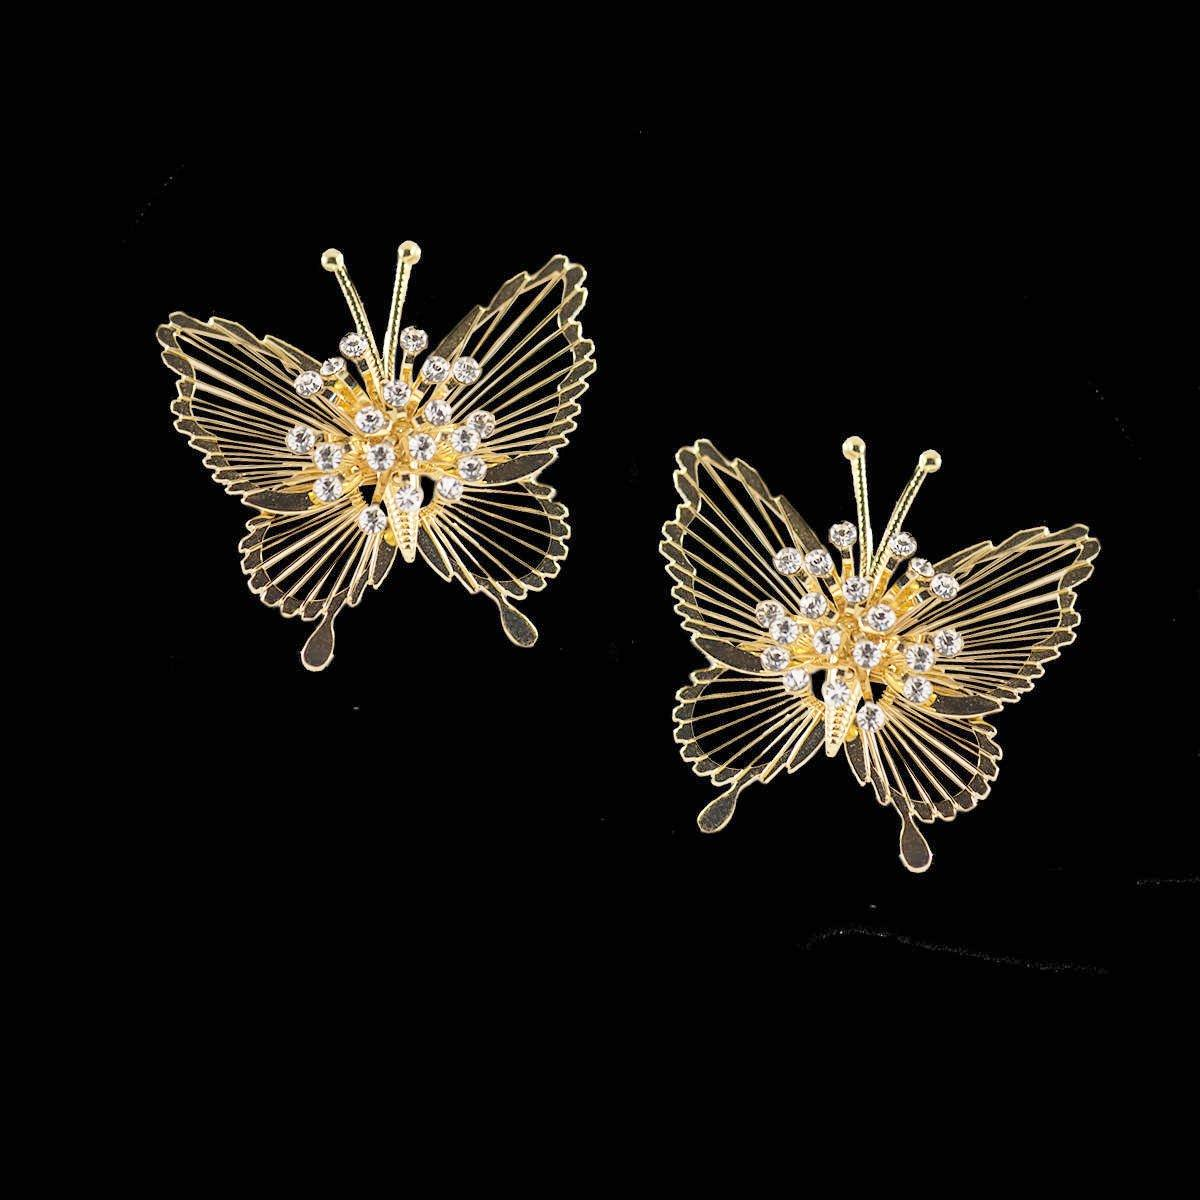 Vintage 50s Monet Butterfly Pins 2, Spinnerette Series - Set of Two